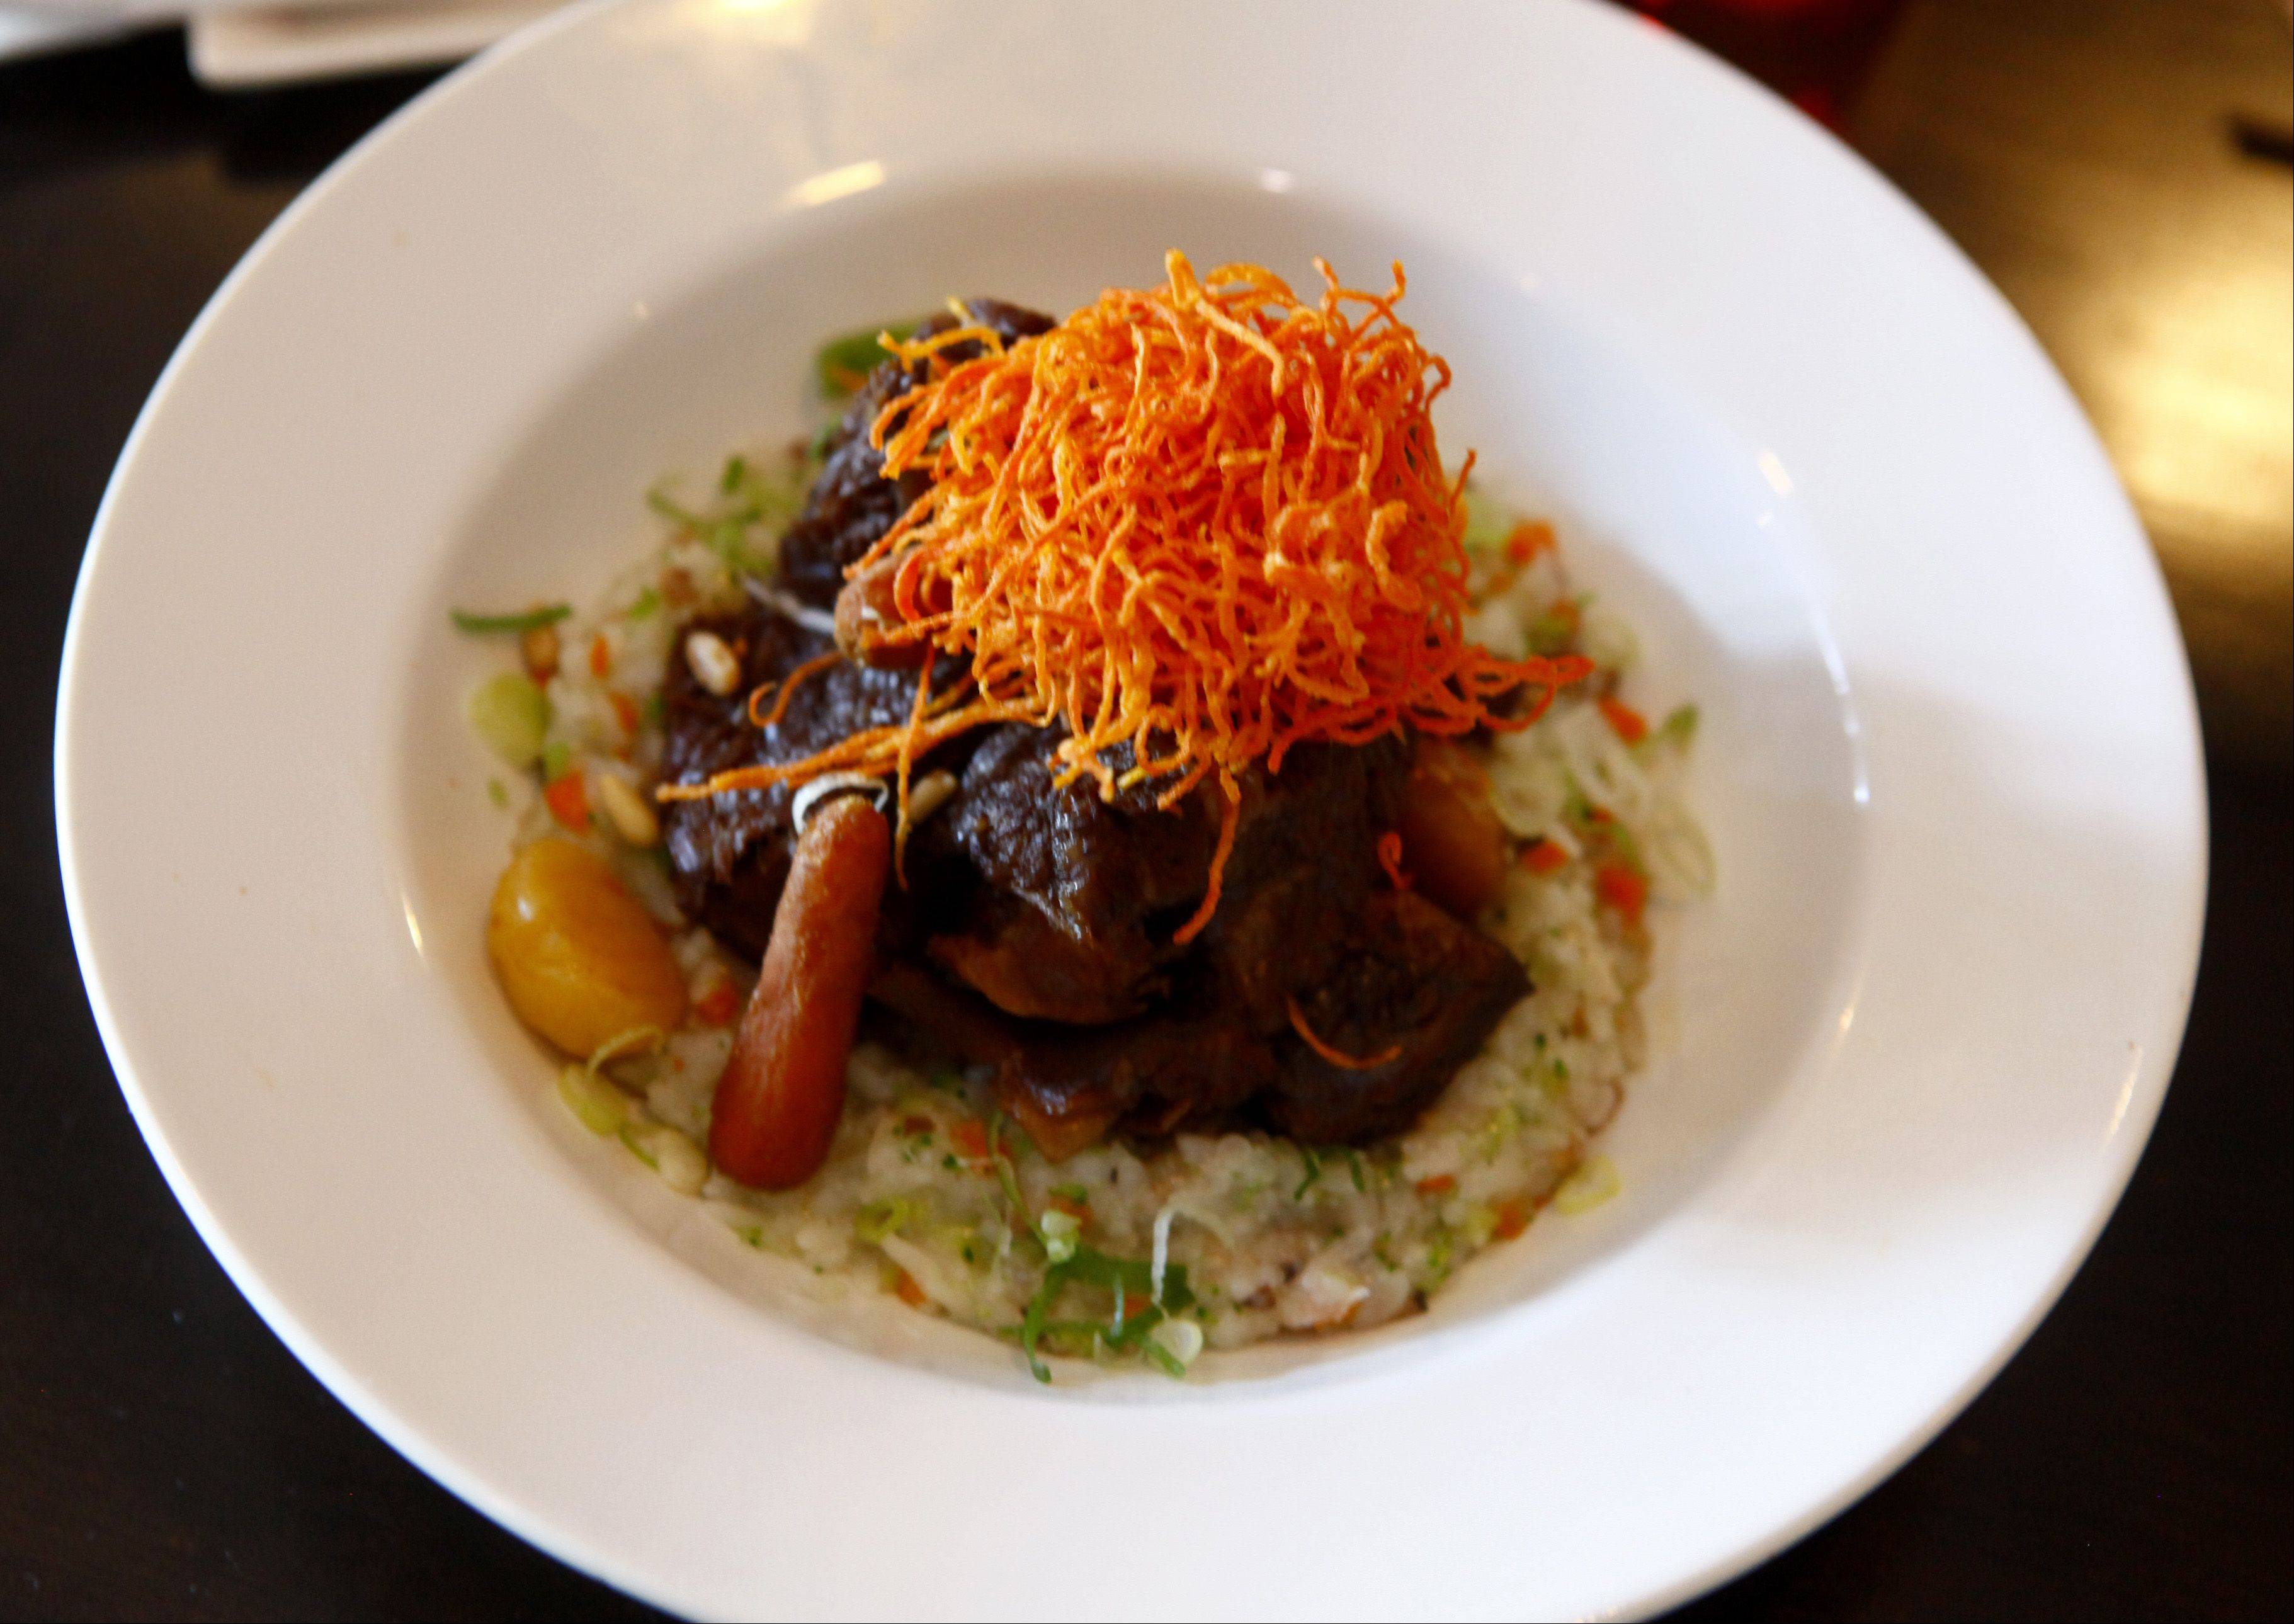 Ttowa's kalbijjim -- a dish of braised beef -- comes with rice vegetable porridge, crispy carrots, pine nuts and chestnuts.